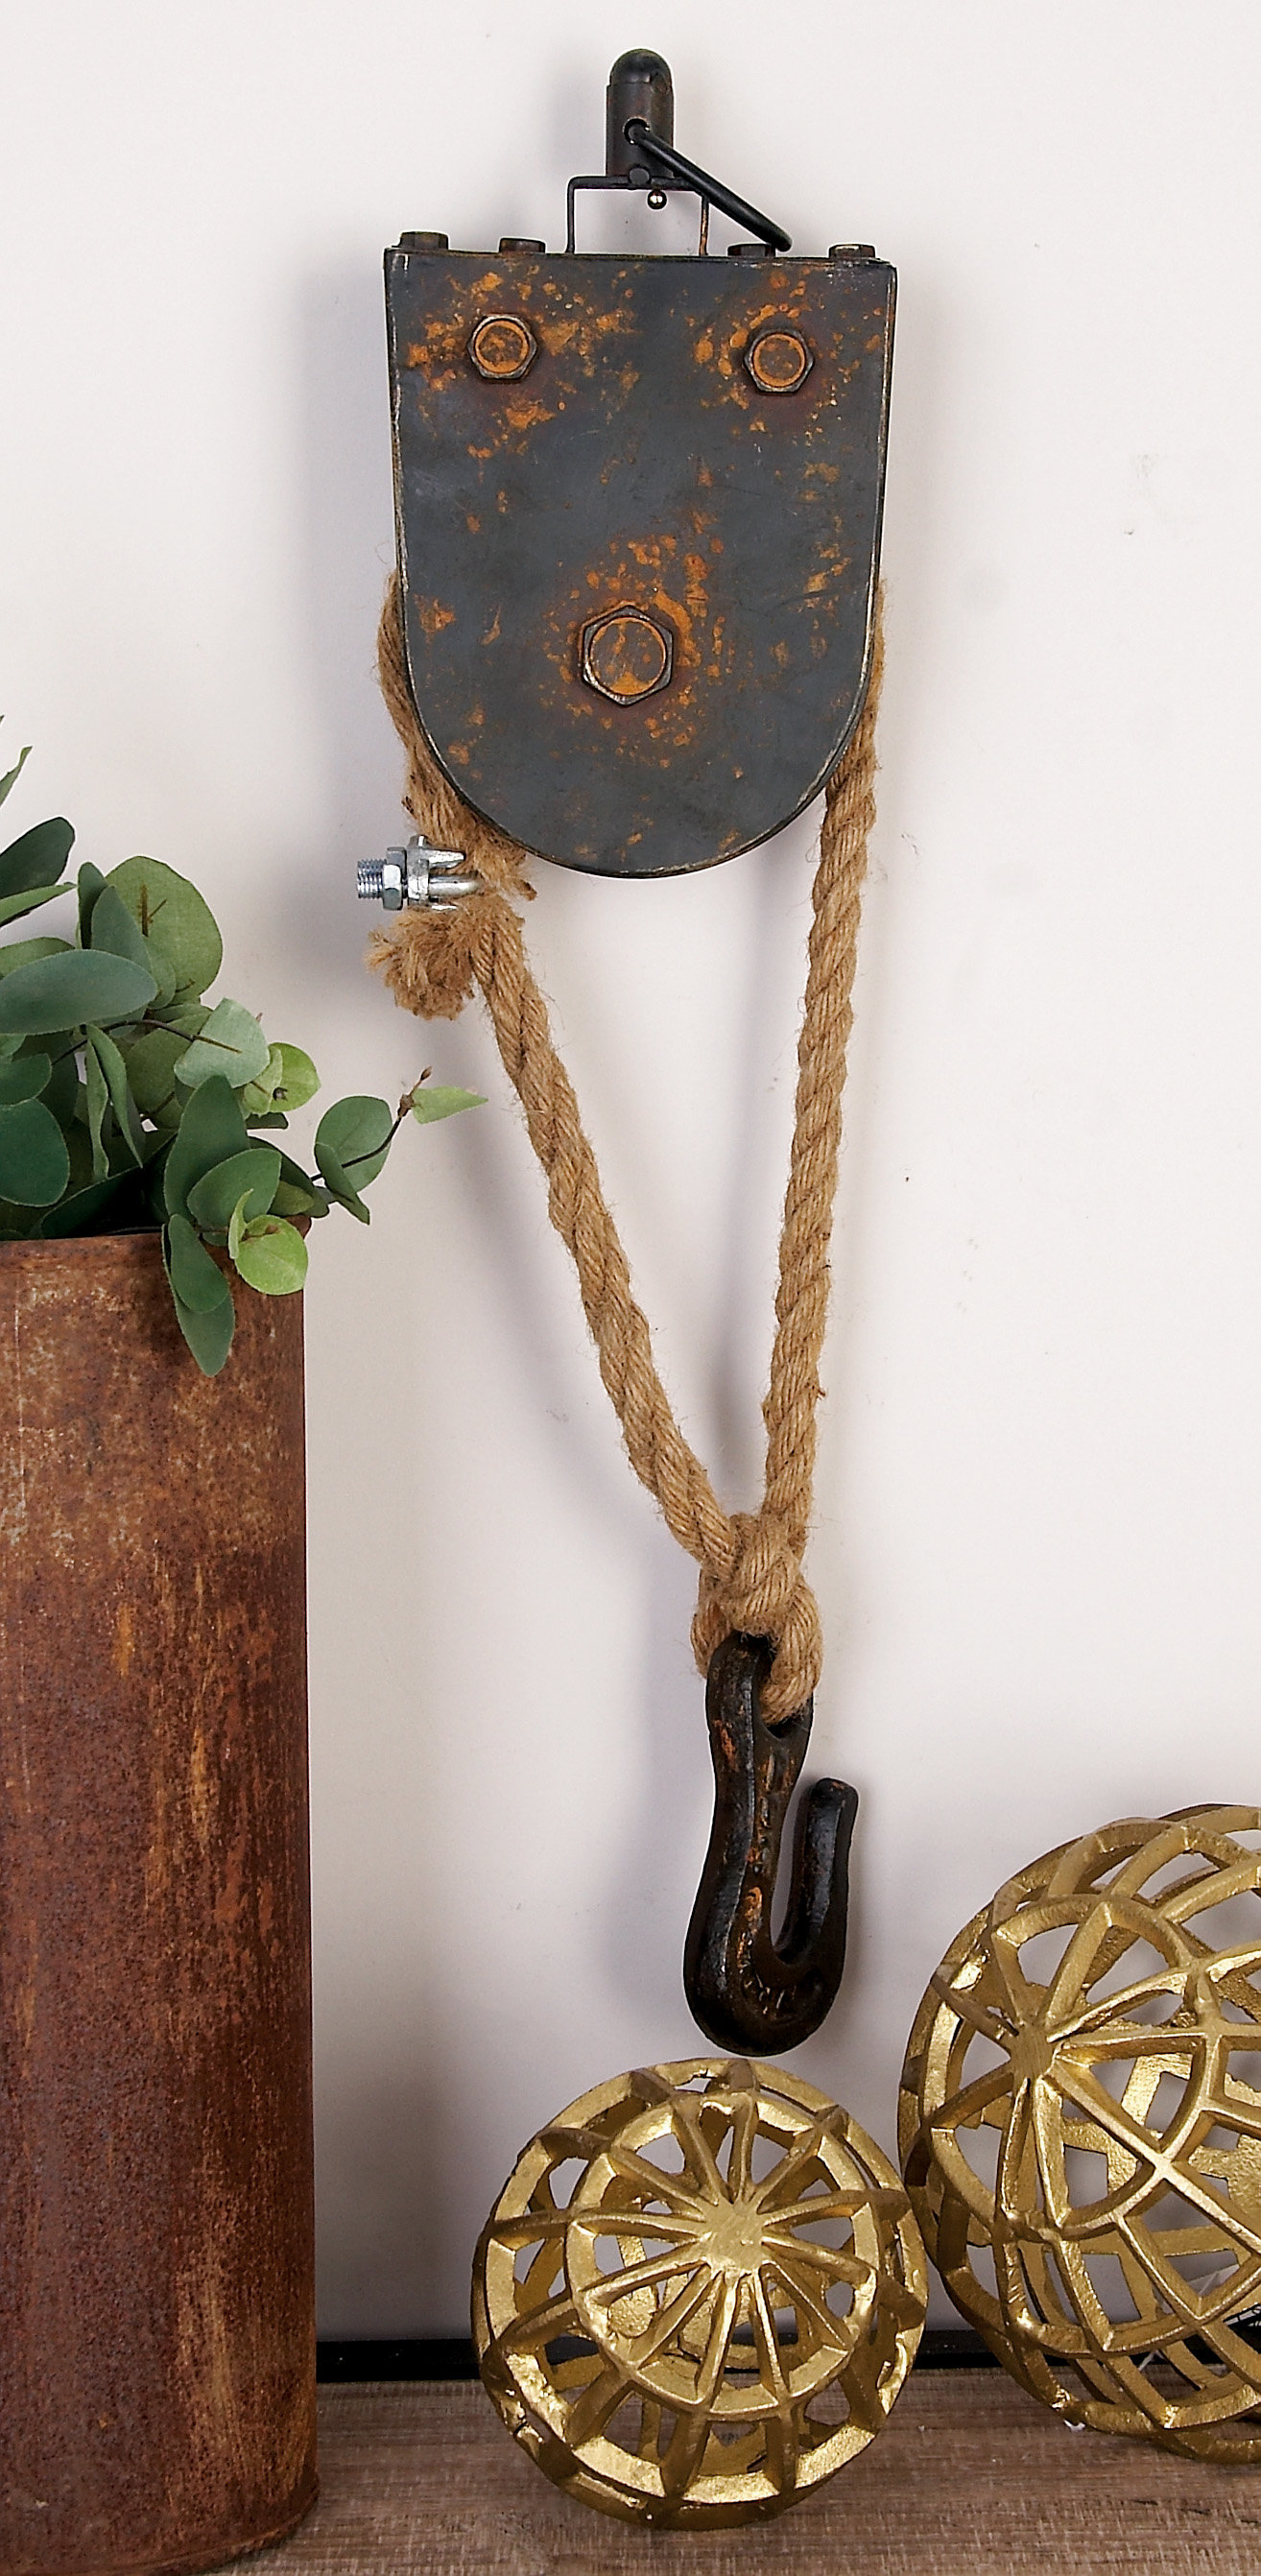 Metal Rope Block Tackle Wall Décor pertaining to Metal Rope Wall Sign Wall Decor (Image 23 of 30)